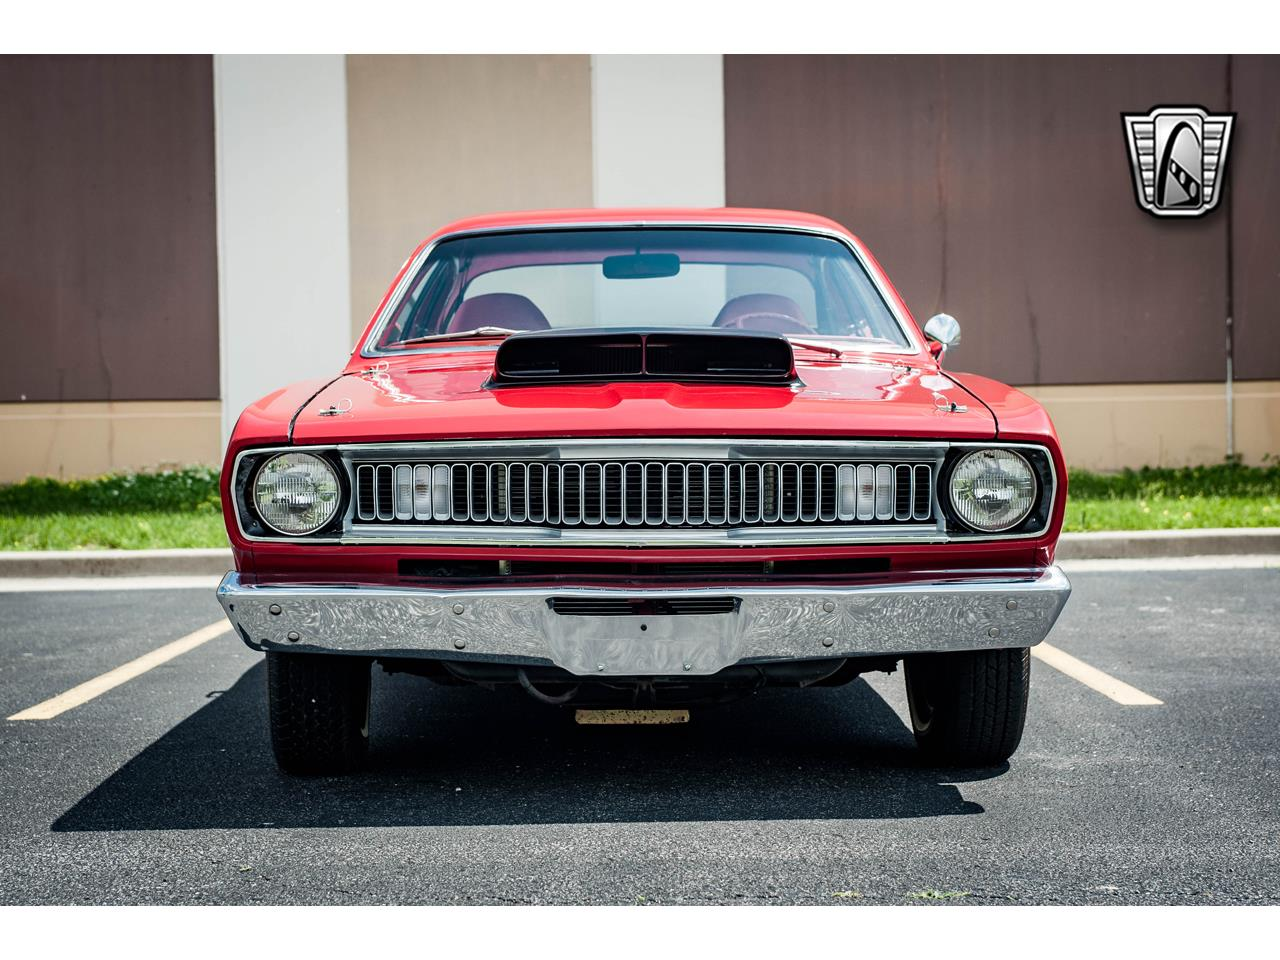 Large Picture of Classic '71 Duster located in O'Fallon Illinois Offered by Gateway Classic Cars - St. Louis - QB9U